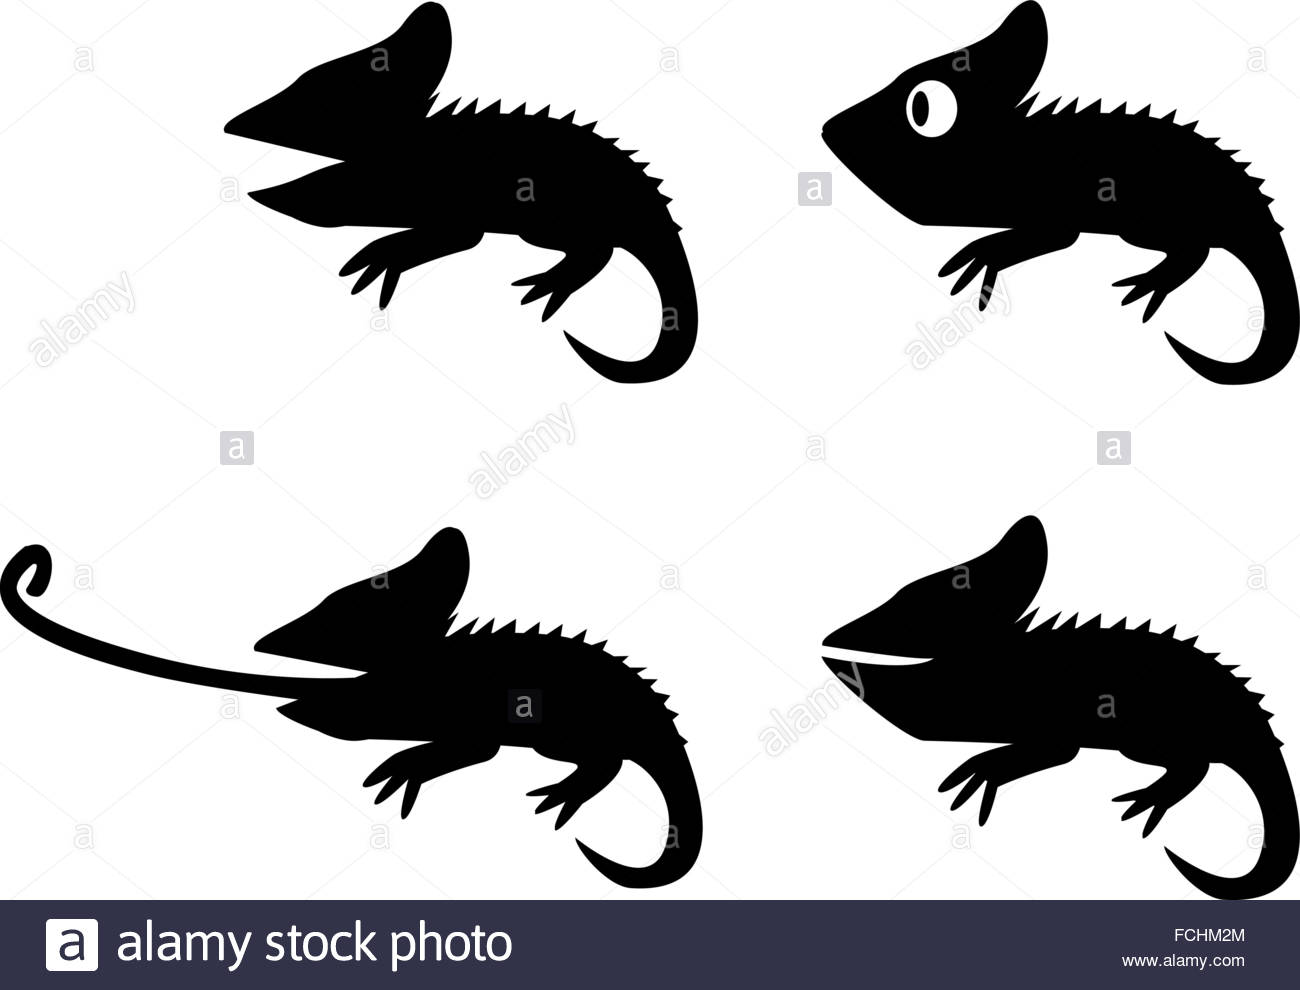 1300x990 Gecko Black And White Stock Photos Amp Images